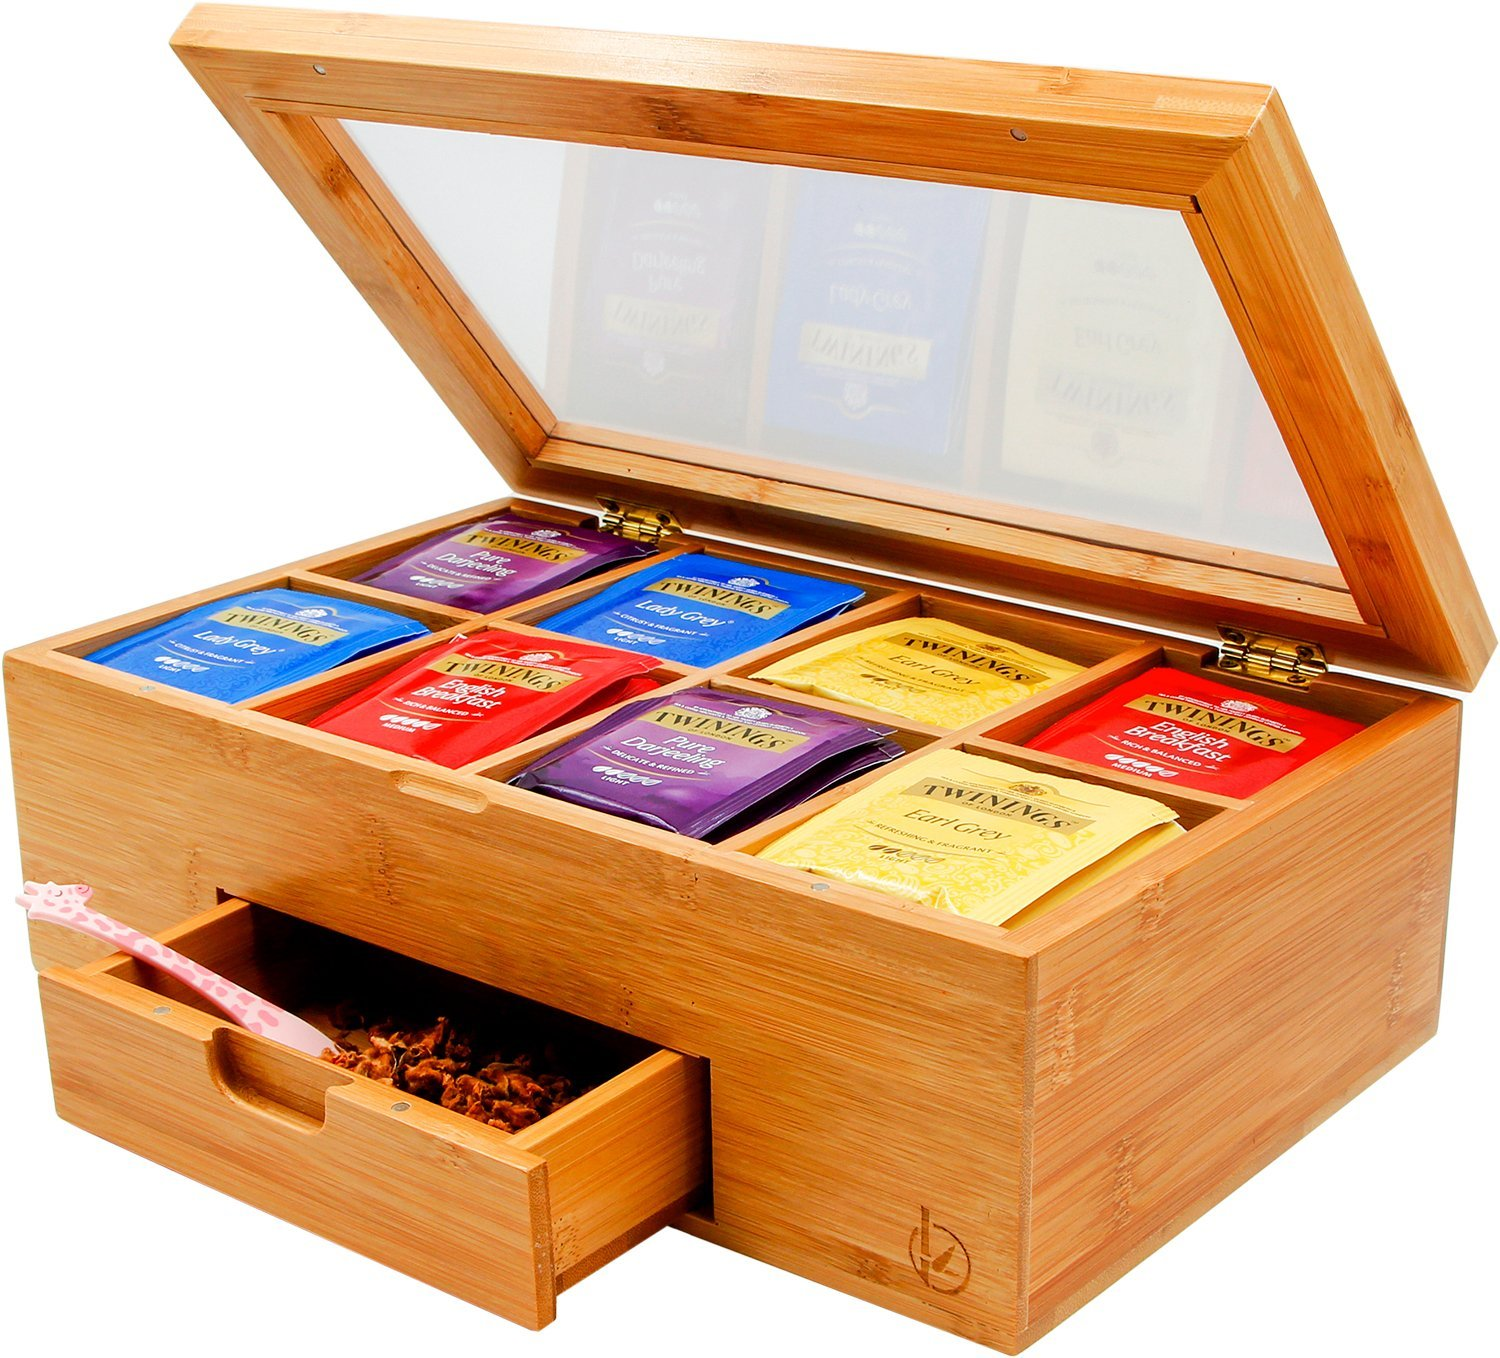 Bamboo Tea Box with Small Drawer, Taller Size Tea Bag Storage Organizer Holds 140+ Standing or Flat Tea Bags, Tea Chest Holder Caddy with 8 Compartments, Natural Wooden Color